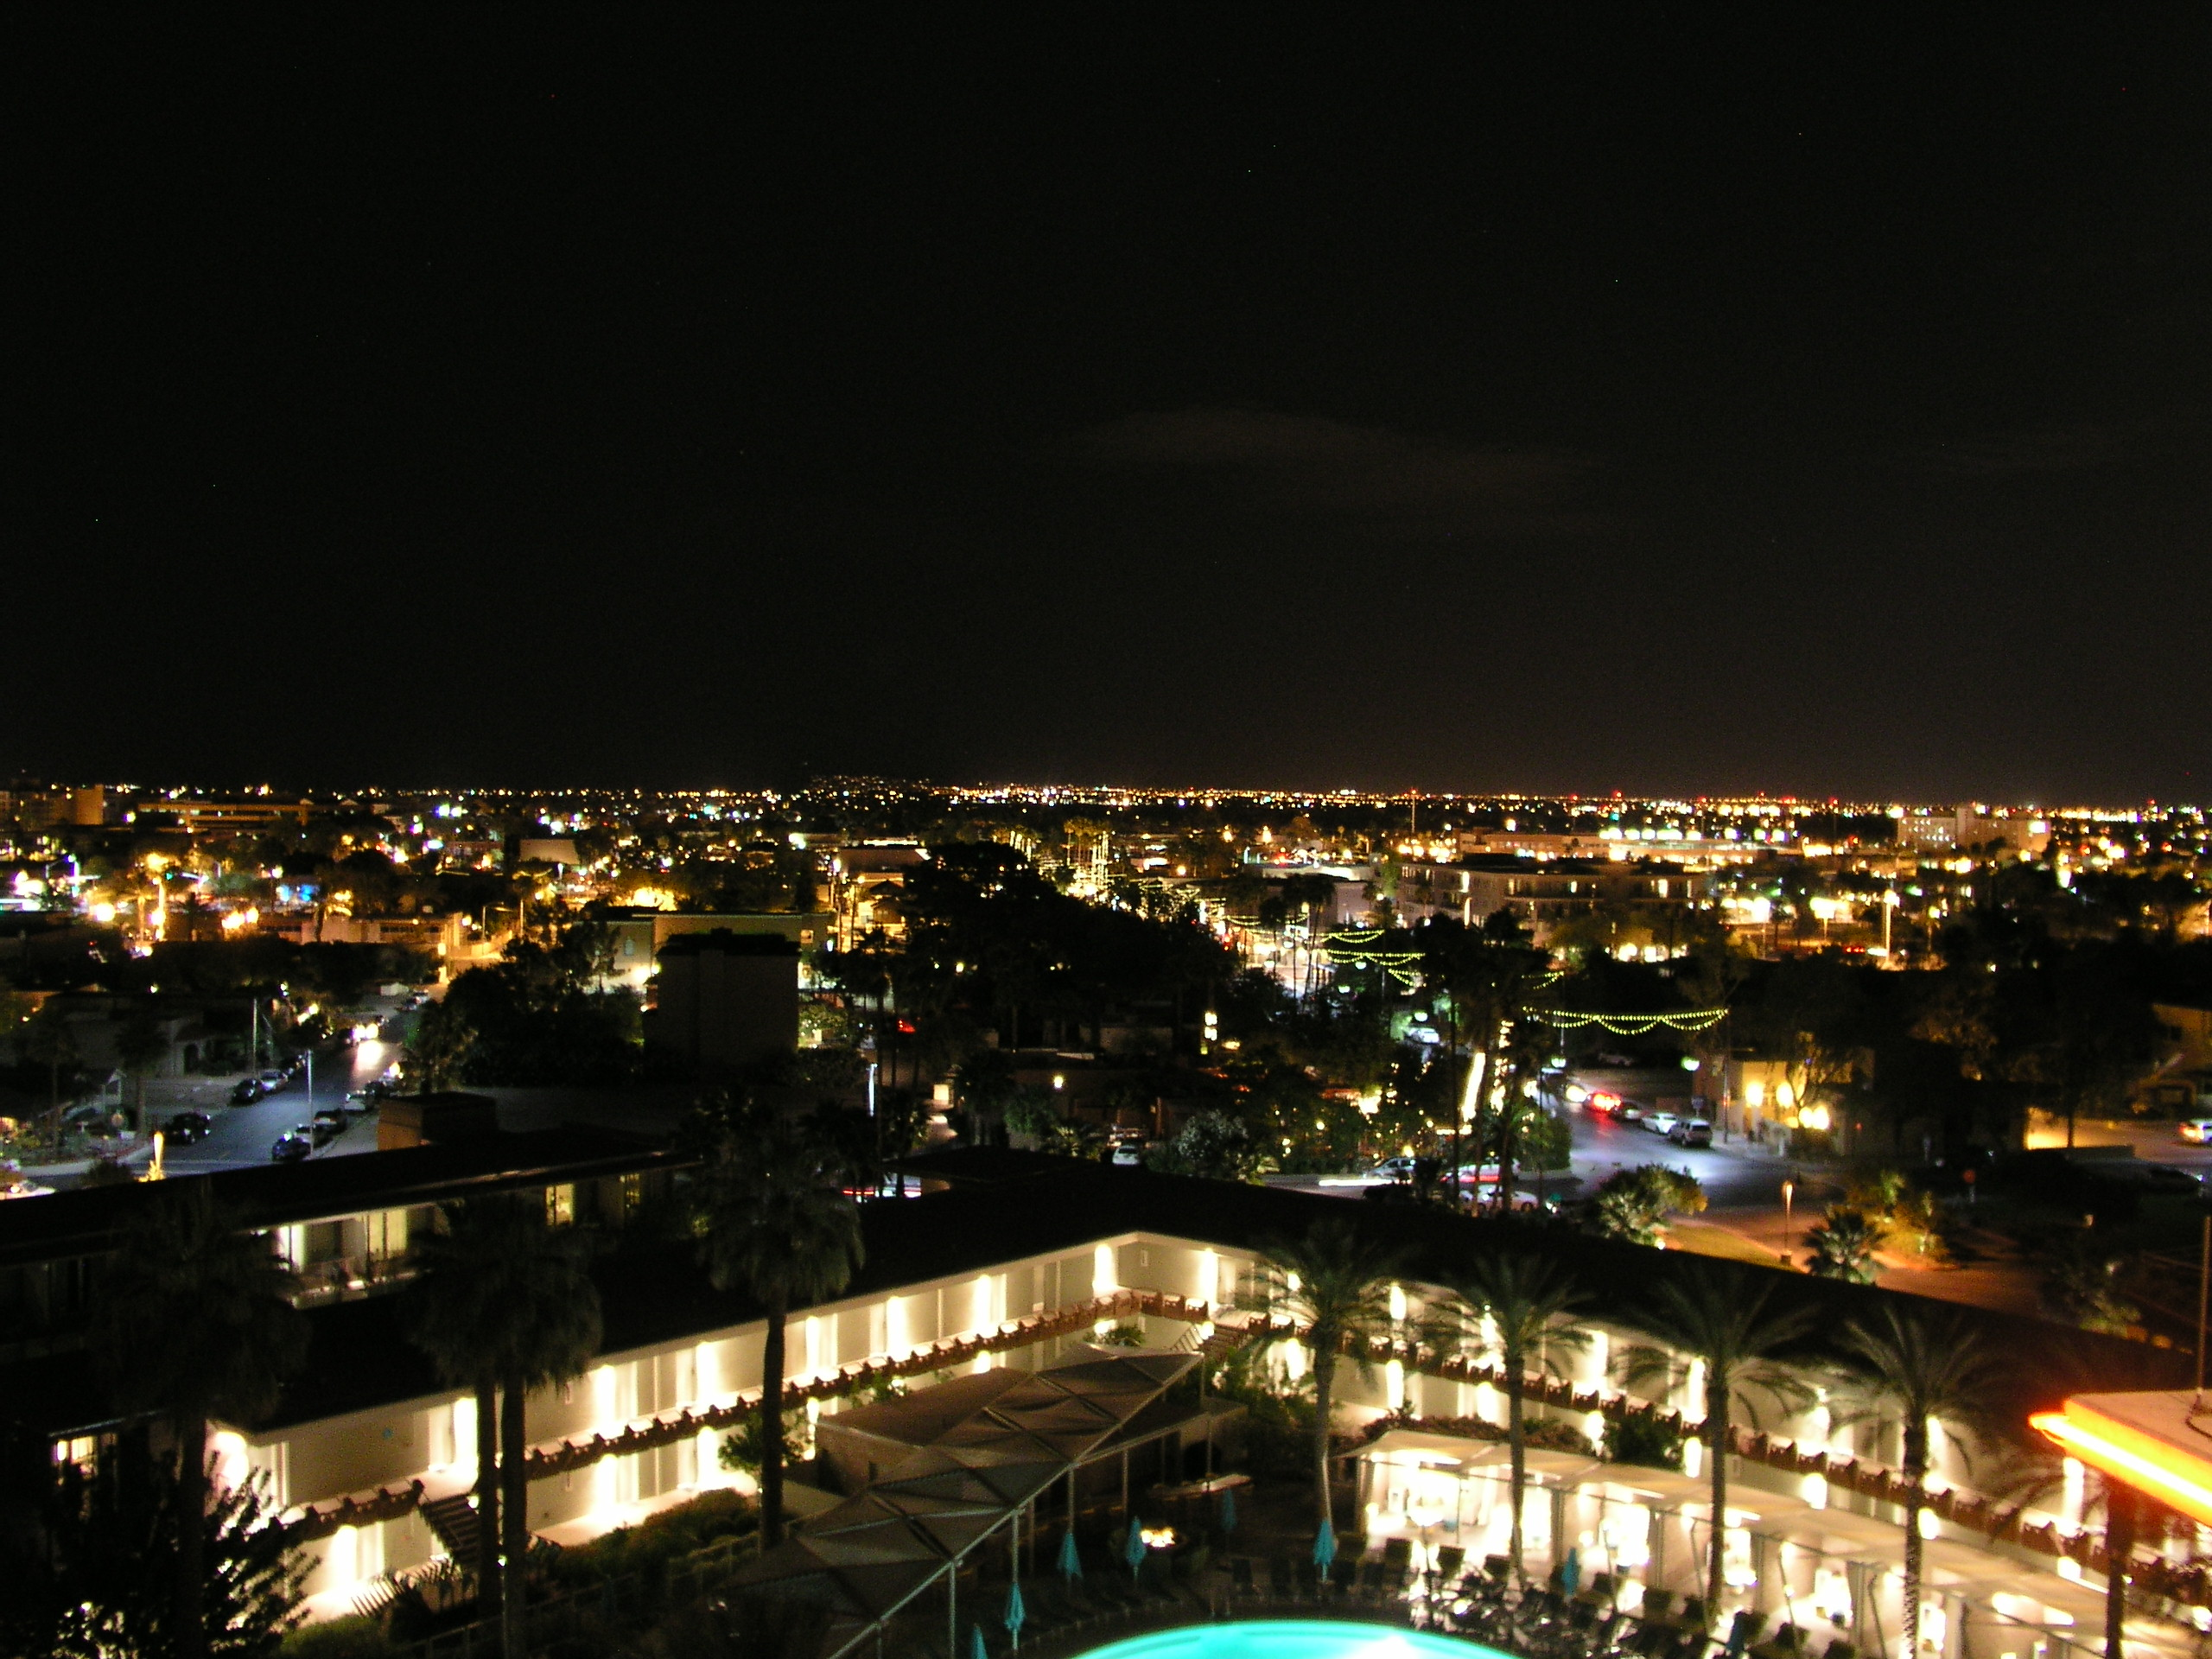 Nighttime-View.jpg